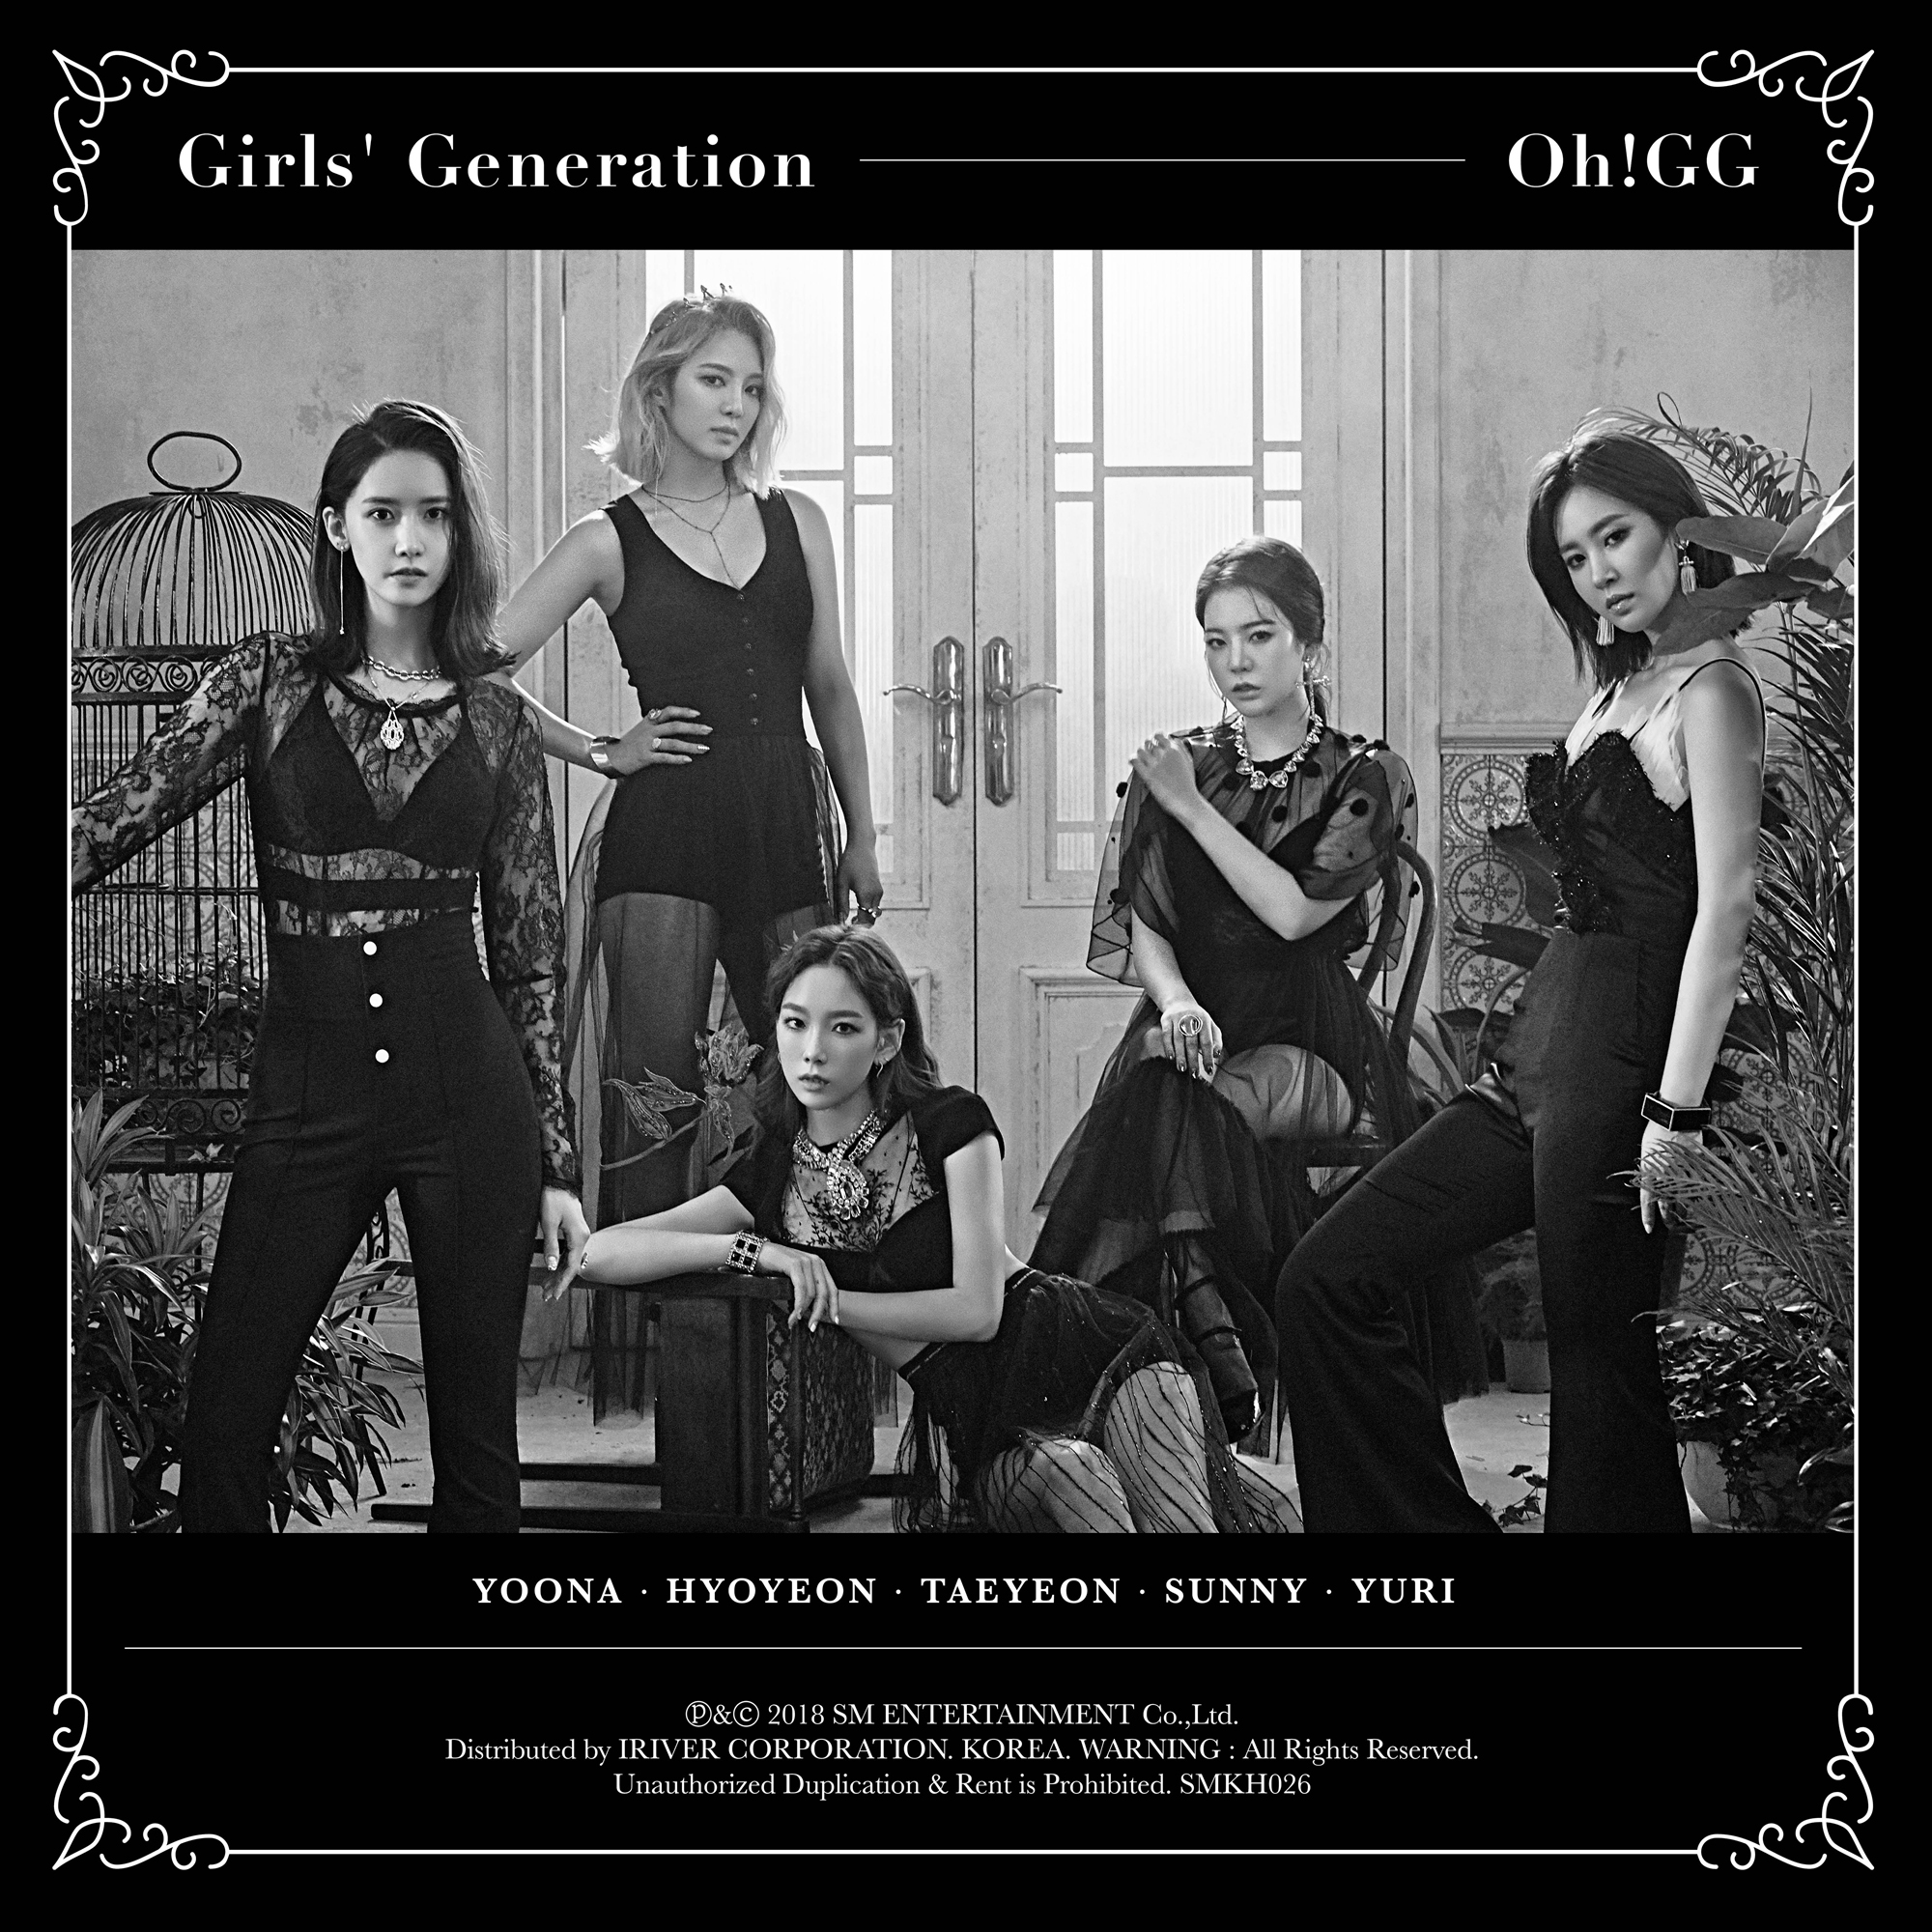 20180906.2323.2 Girls' Generation-Oh!GG - Lil' Touch (FLAC) cover.jpg